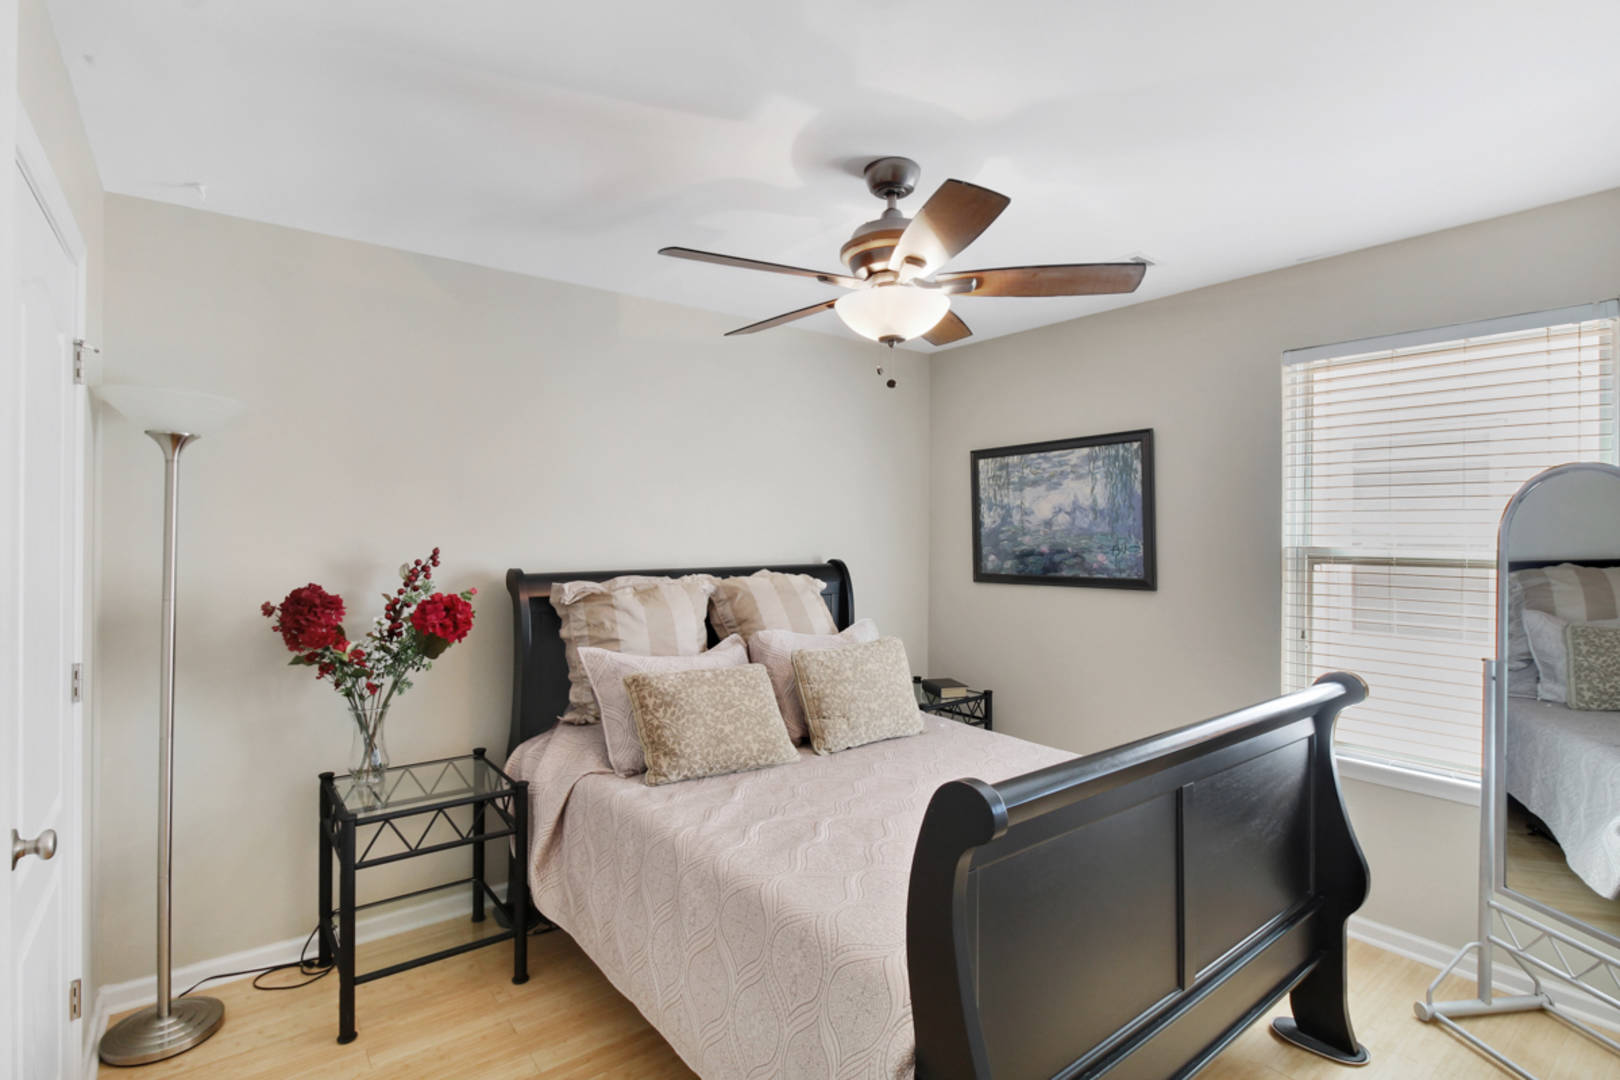 7 Night Heron Way Savannah, GA 31407